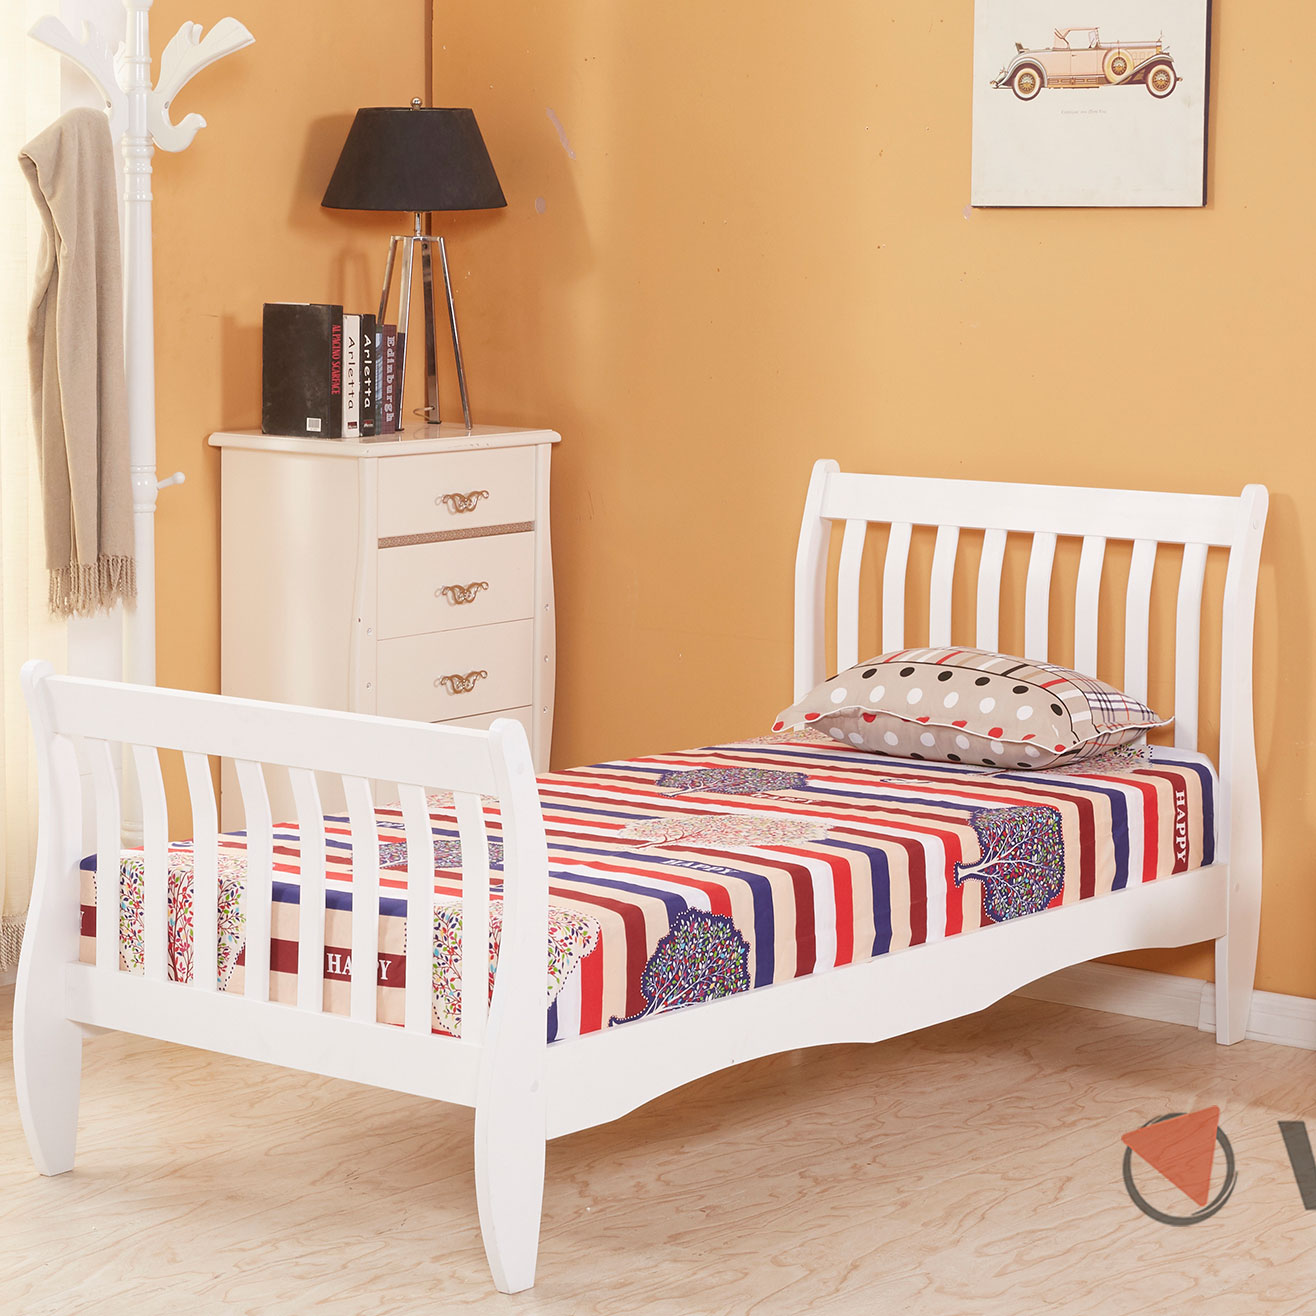 3ft Single Wooden Sleigh Bed Frame Pine Bedroom Furniture